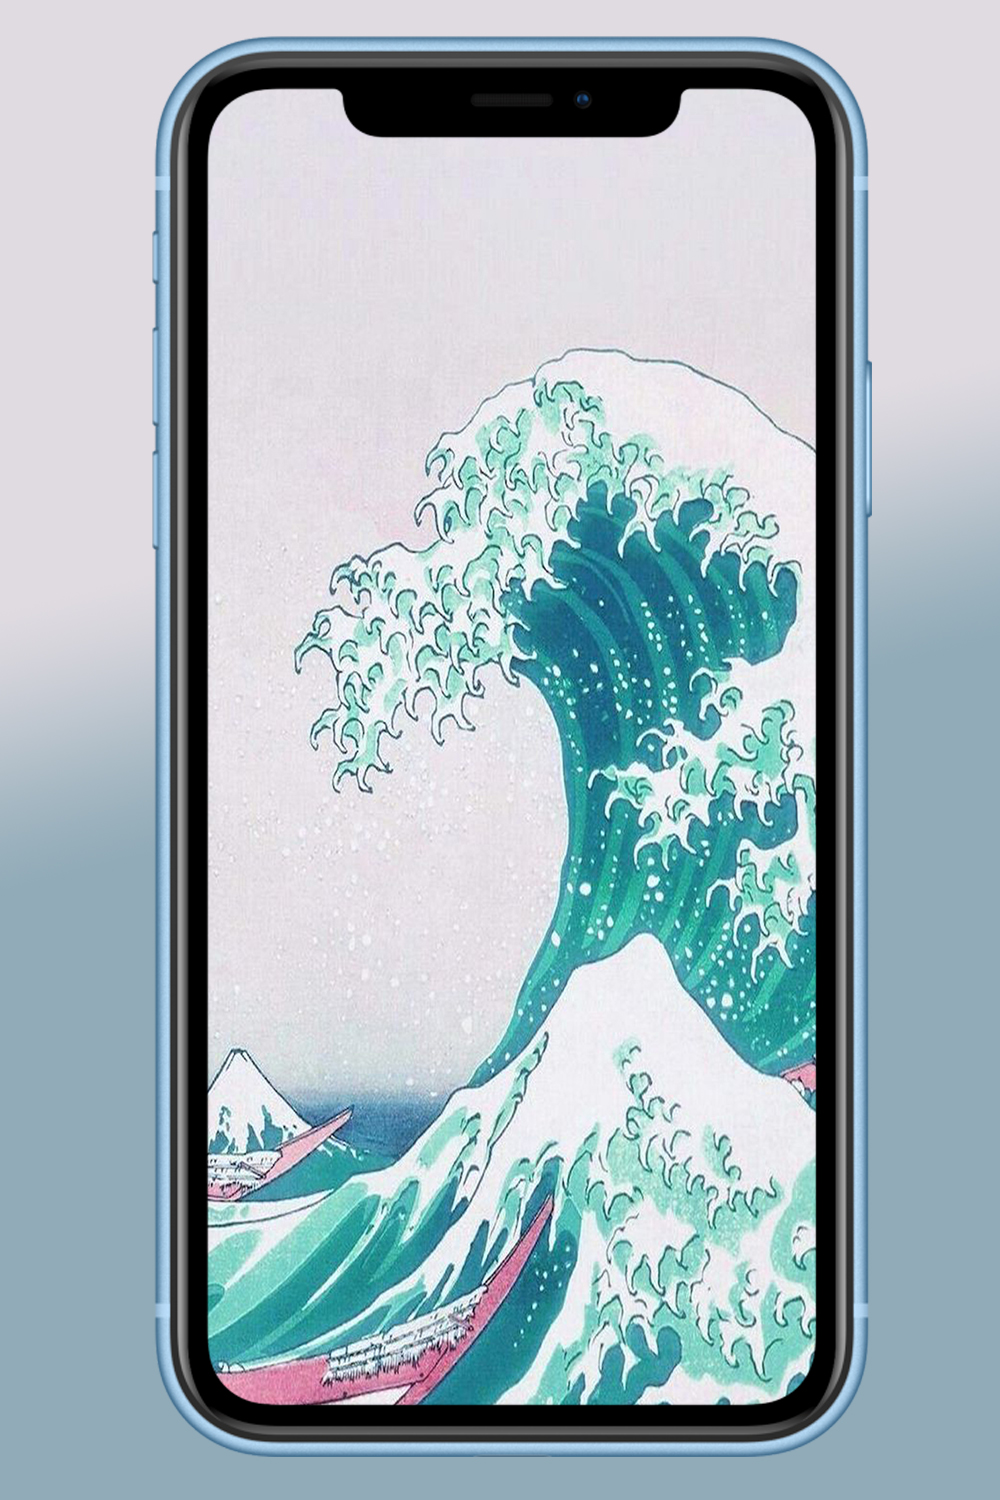 Phone X Notch Hiding Wallpaper Which Are Free To Download And Use As Background Images On Your Iphon In 2020 Watercolor Wallpaper Iphone Iphone Wallpaper Images Iphone